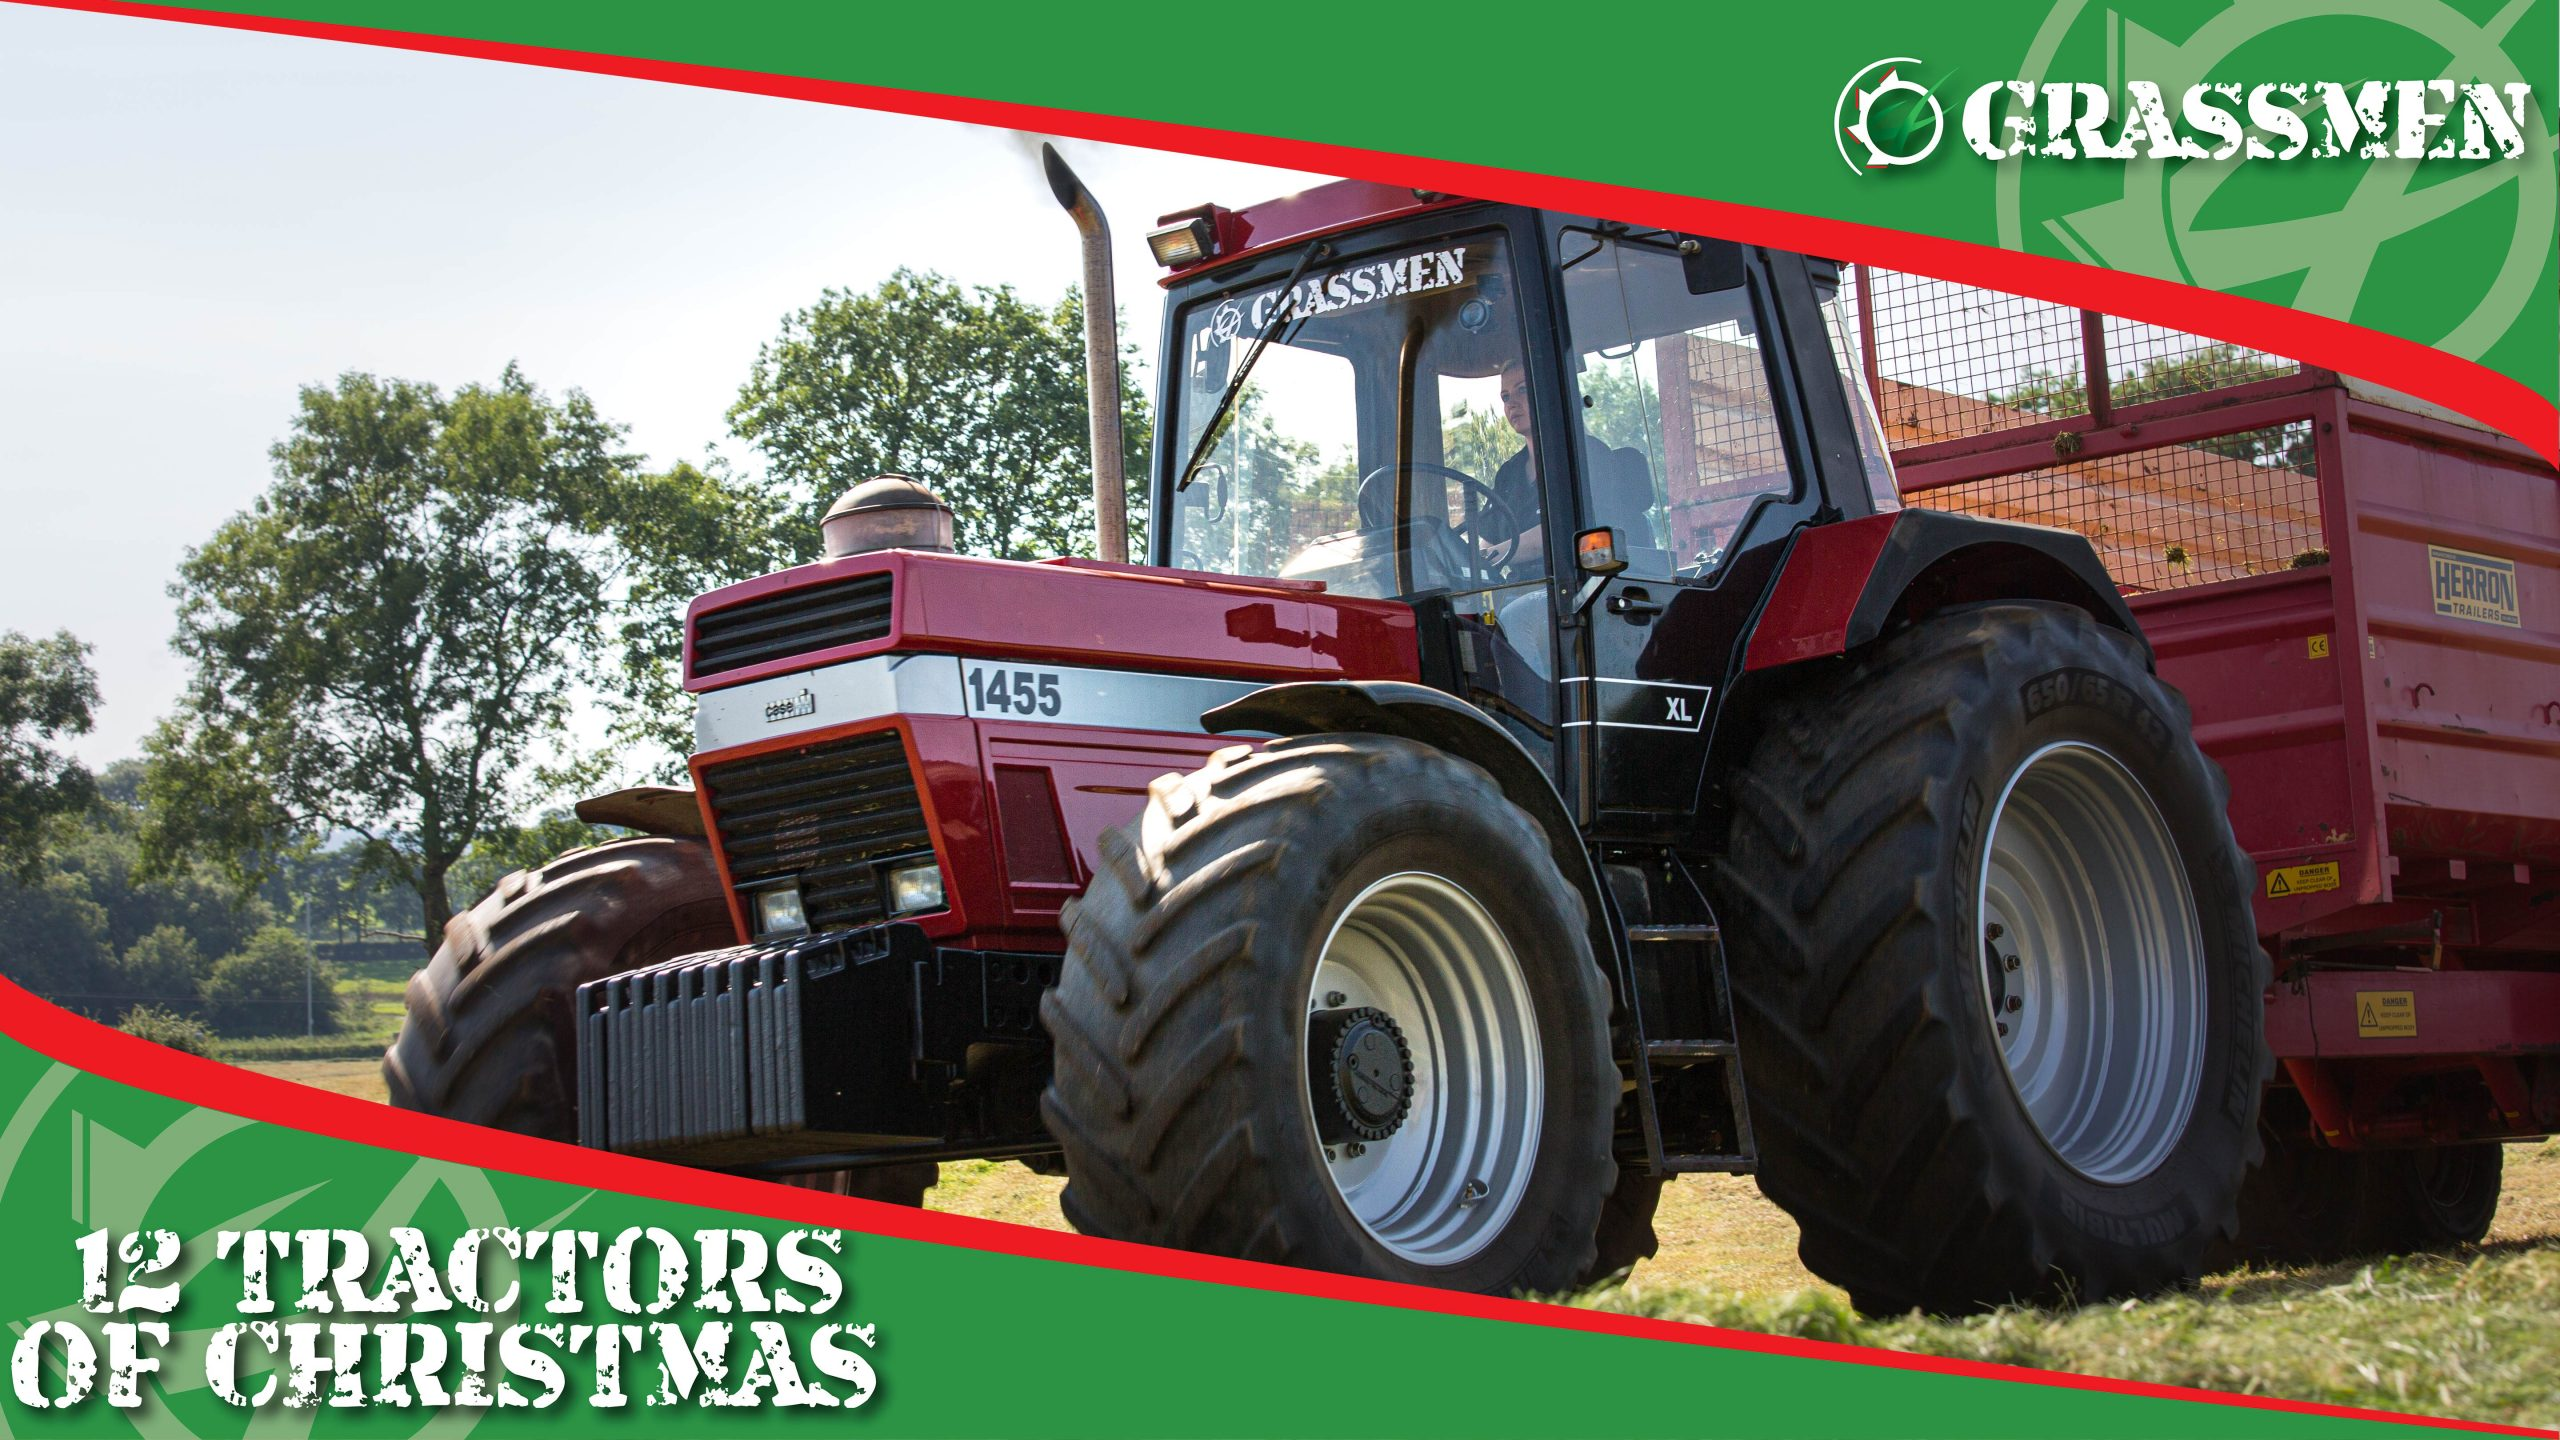 CASE 1455 XL - 12 Tractors of Christmas!